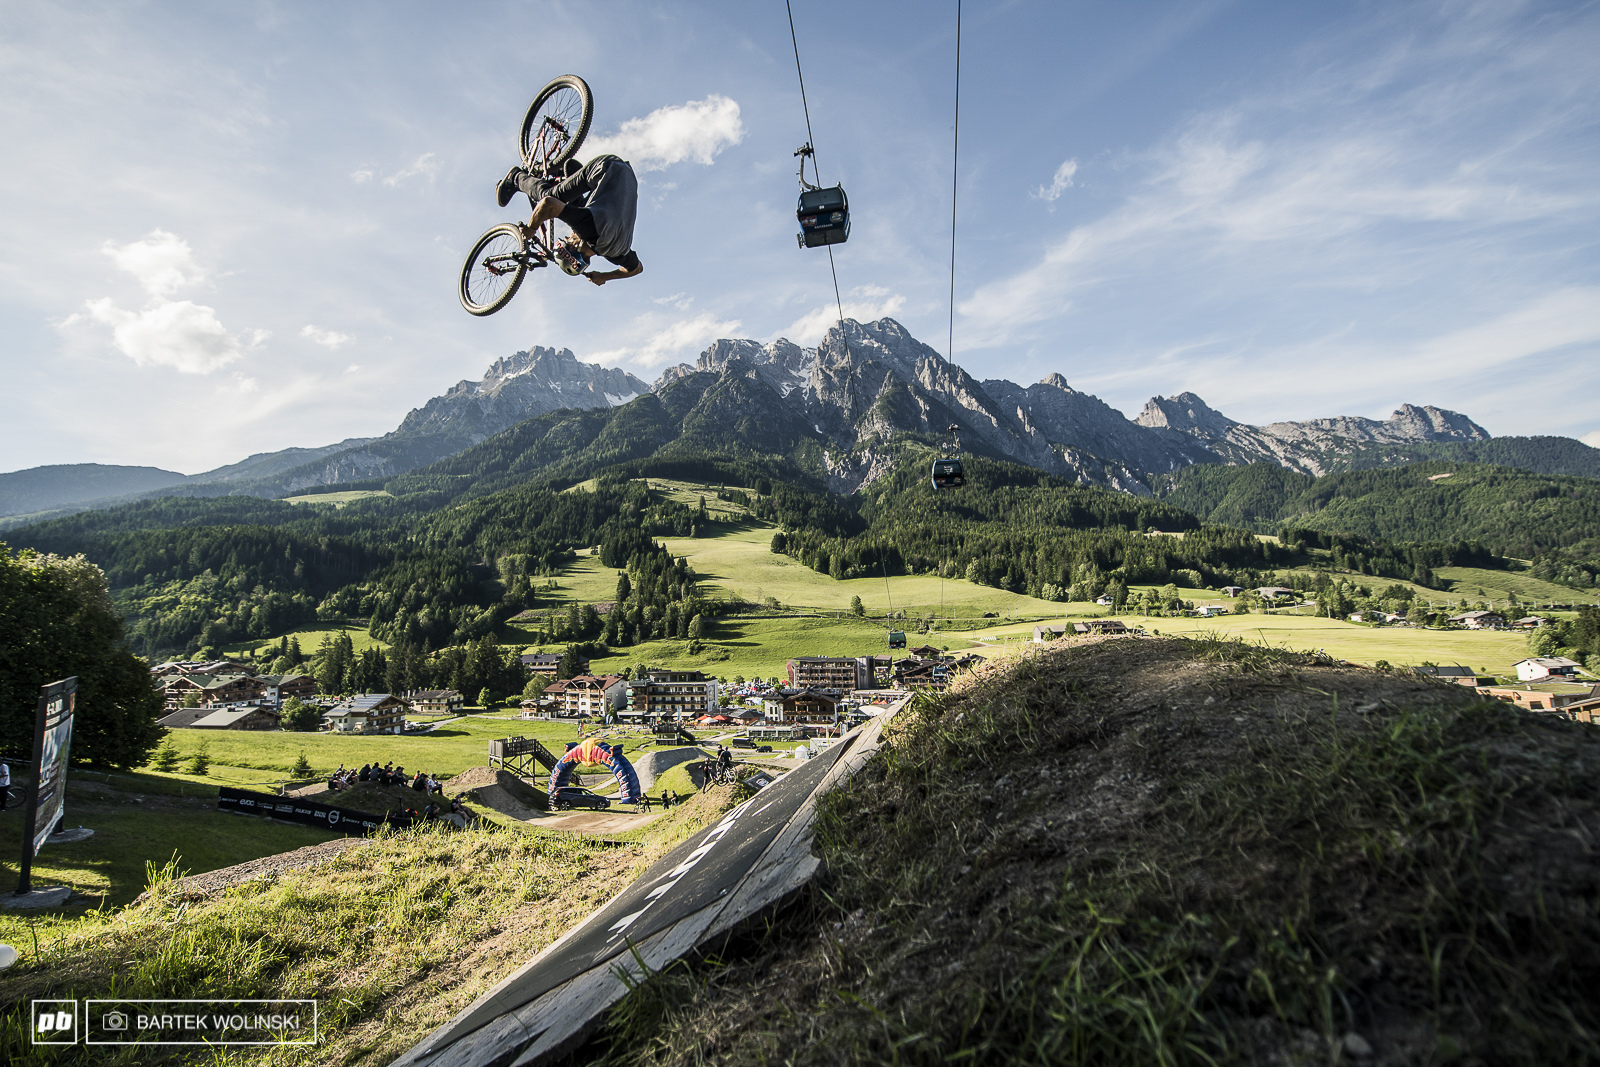 Anthony is back strong for the new season of competitions. Not only he went far above the rest of the pack on Leogang s jumps but also tried new things like his personal variation of Cashroll.